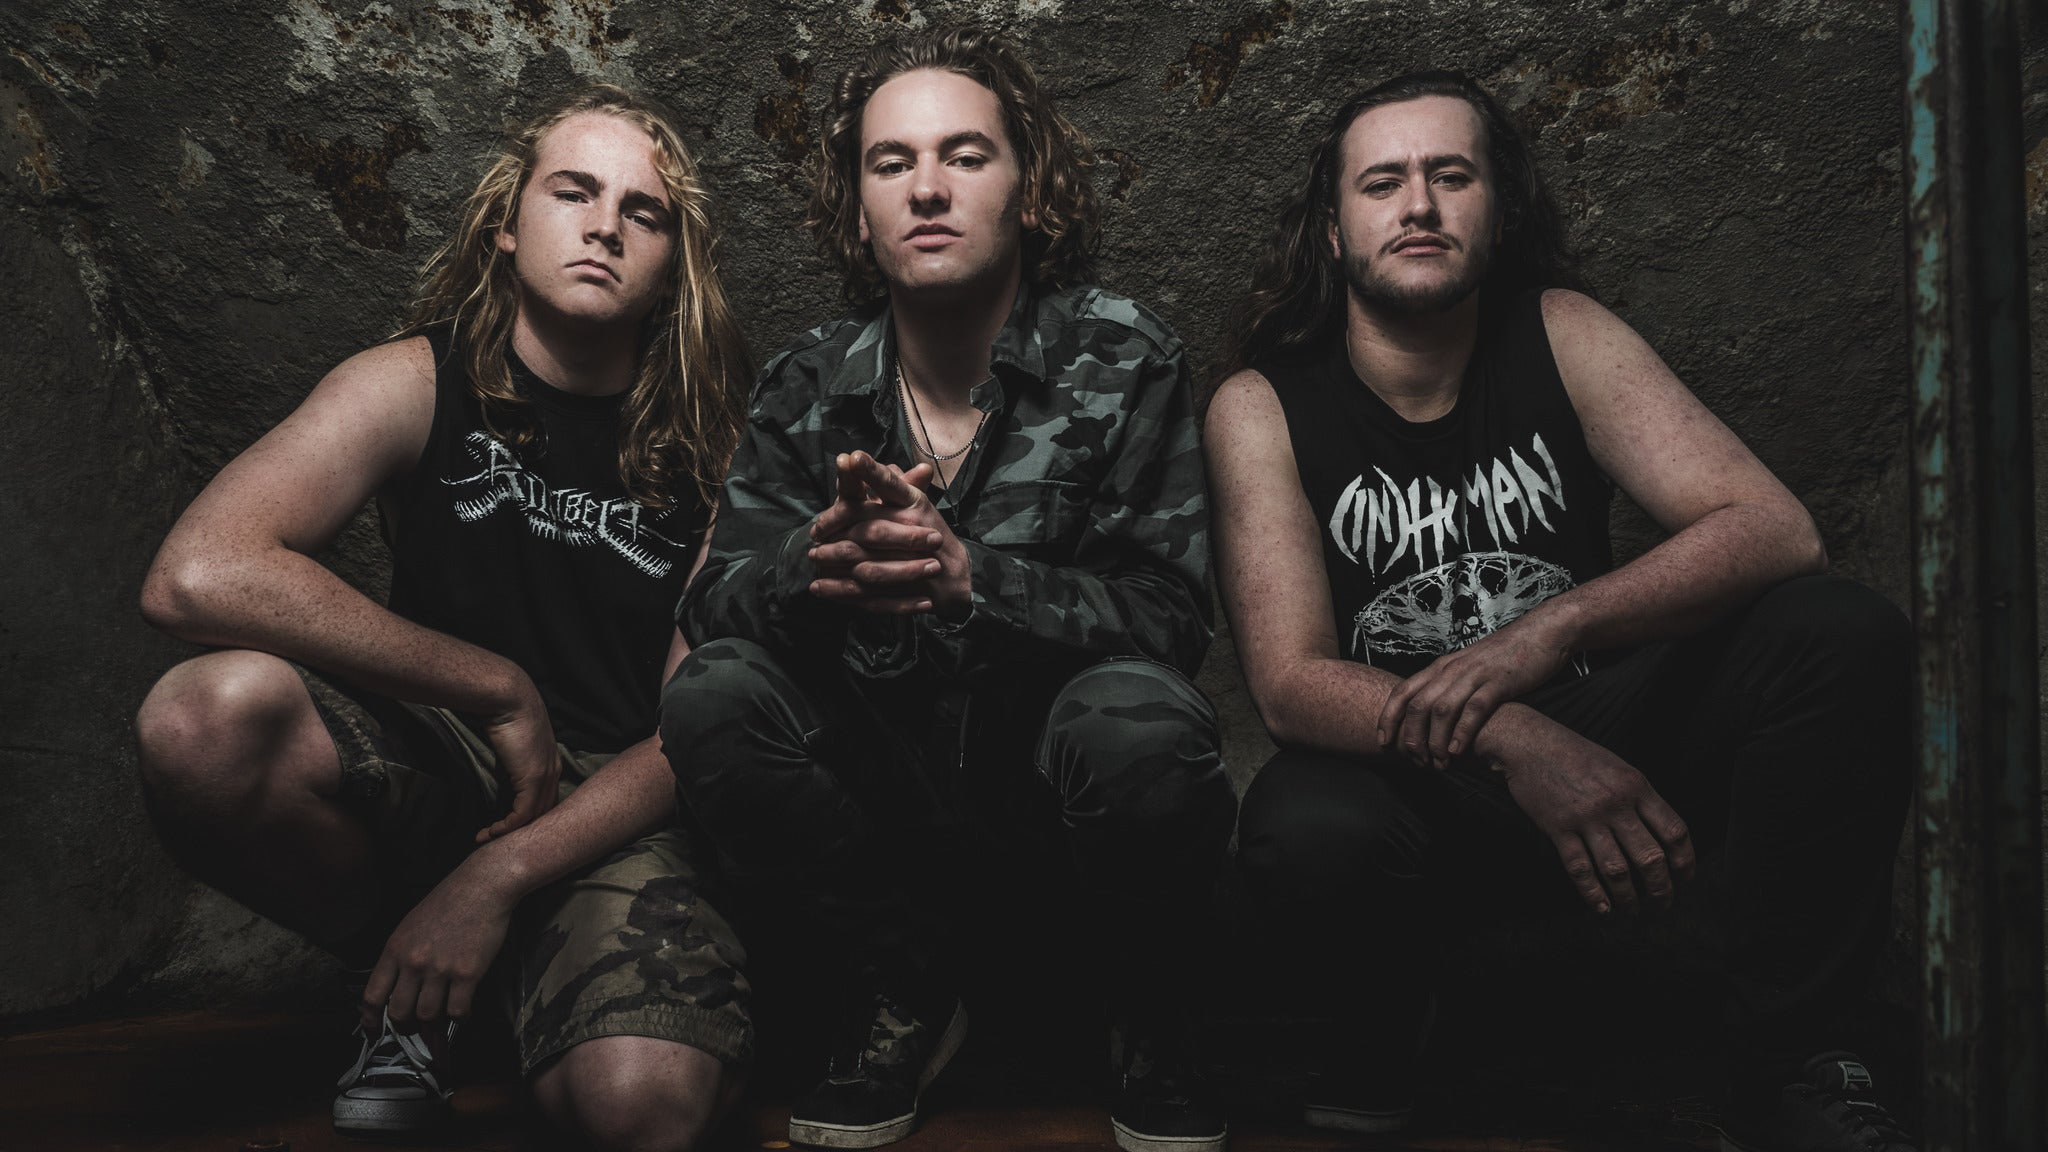 Alien Weaponry at Roxy Theatre-CA